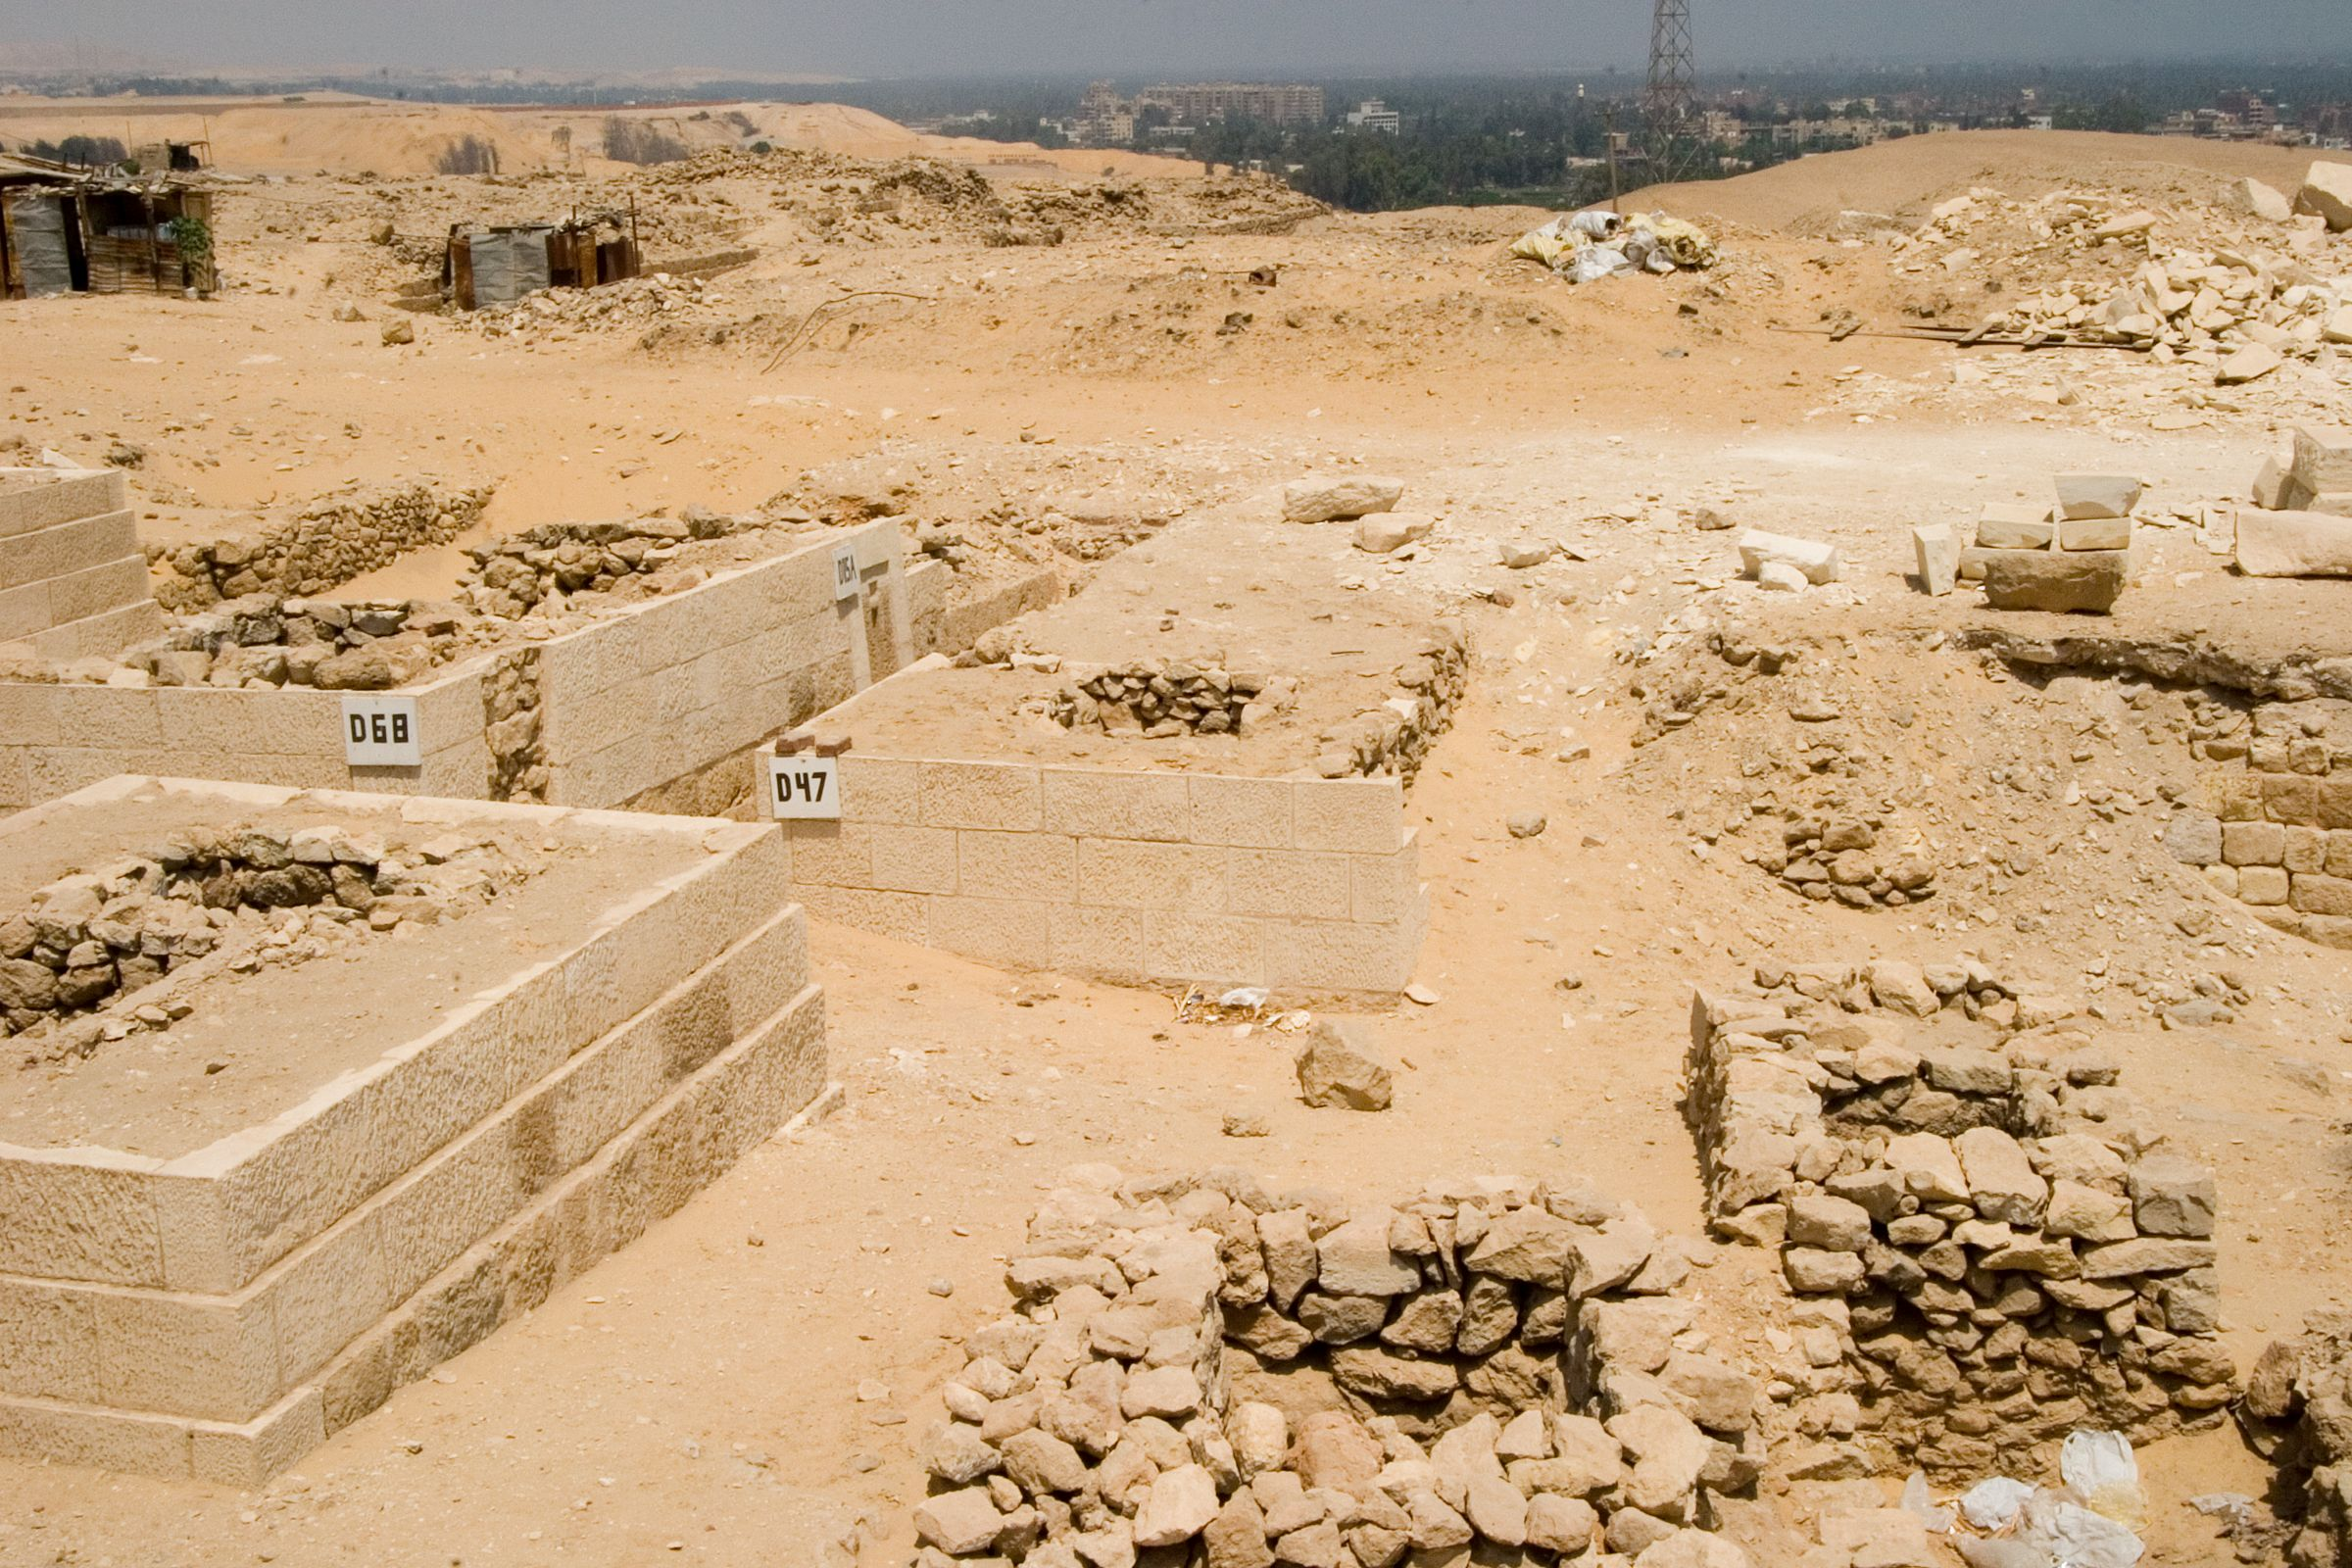 Western Cemetery: Site: Giza; View: D 68, D 47